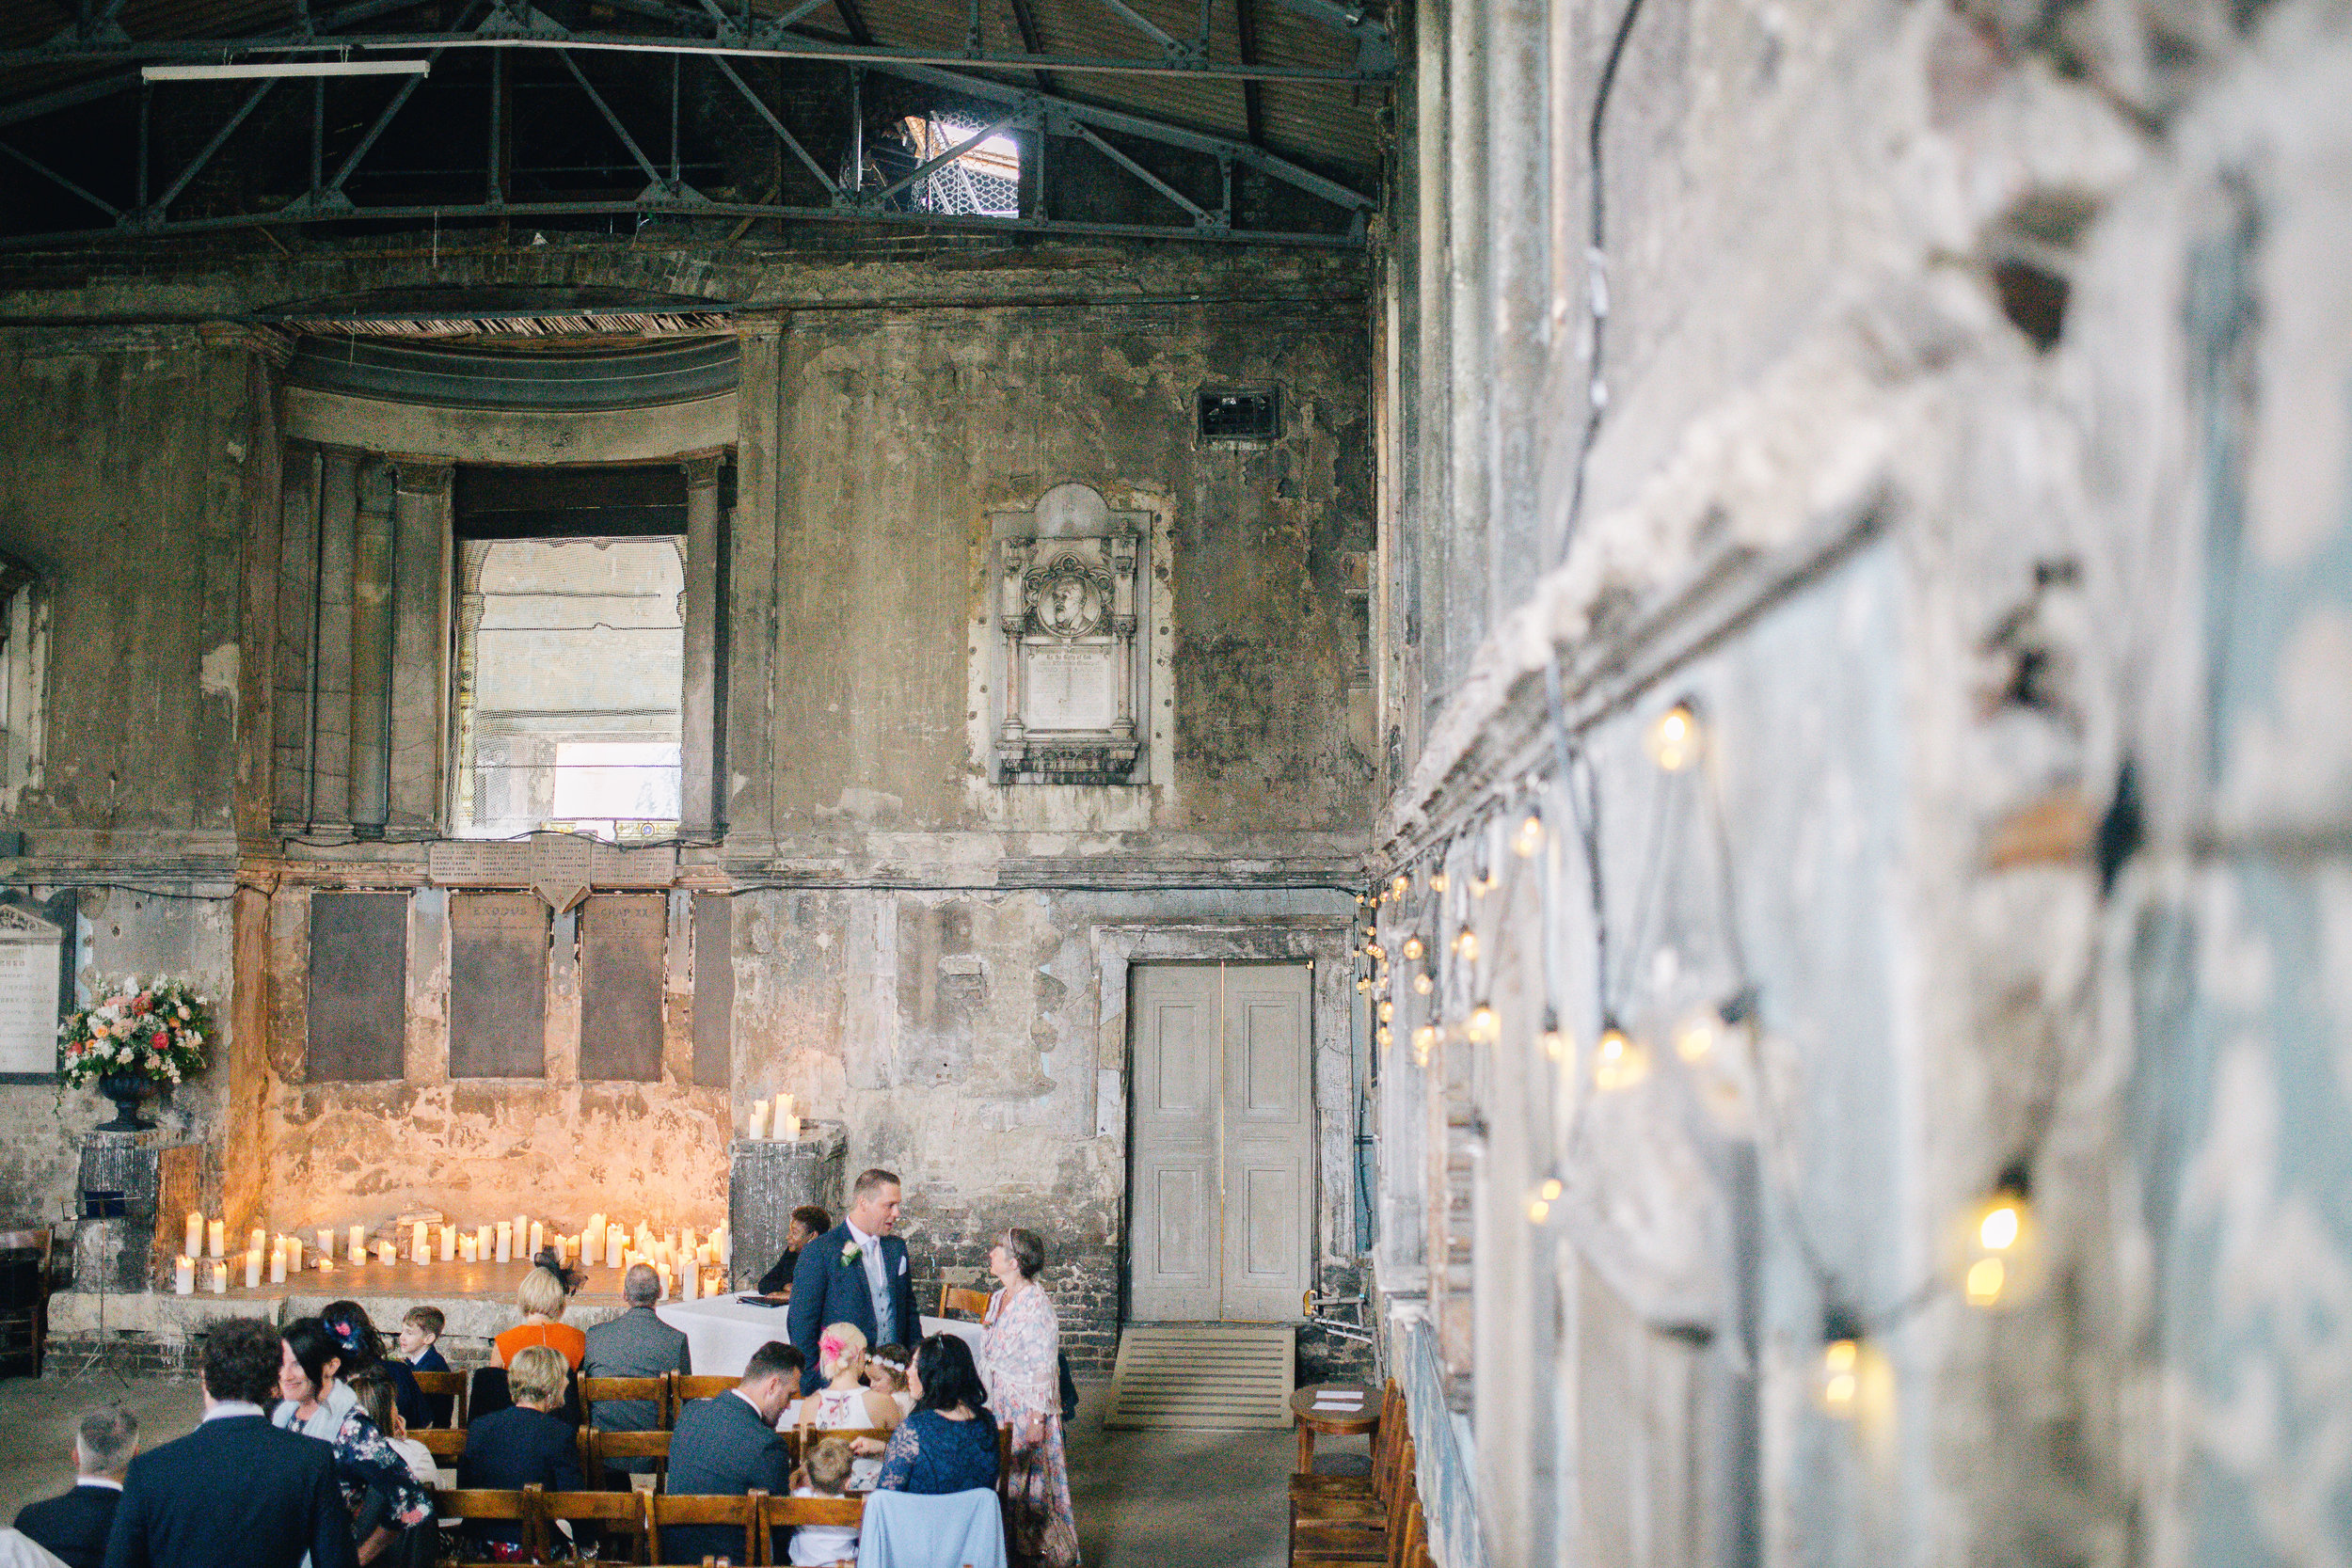 asylum-london-lordship-laura-mott-dulwich-london-015.jpg